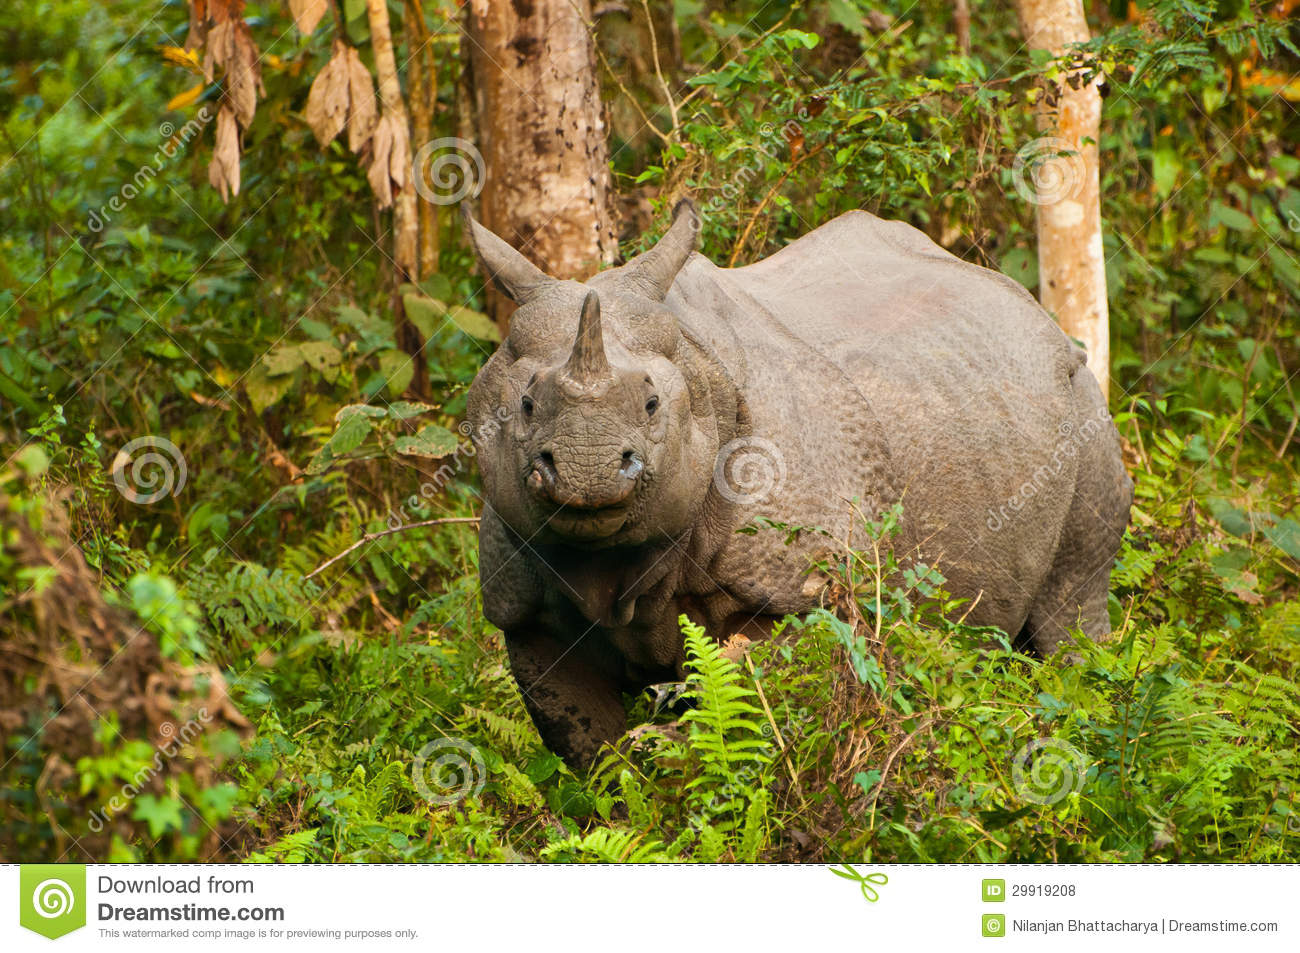 even today there exists a species of rhinoceros with one